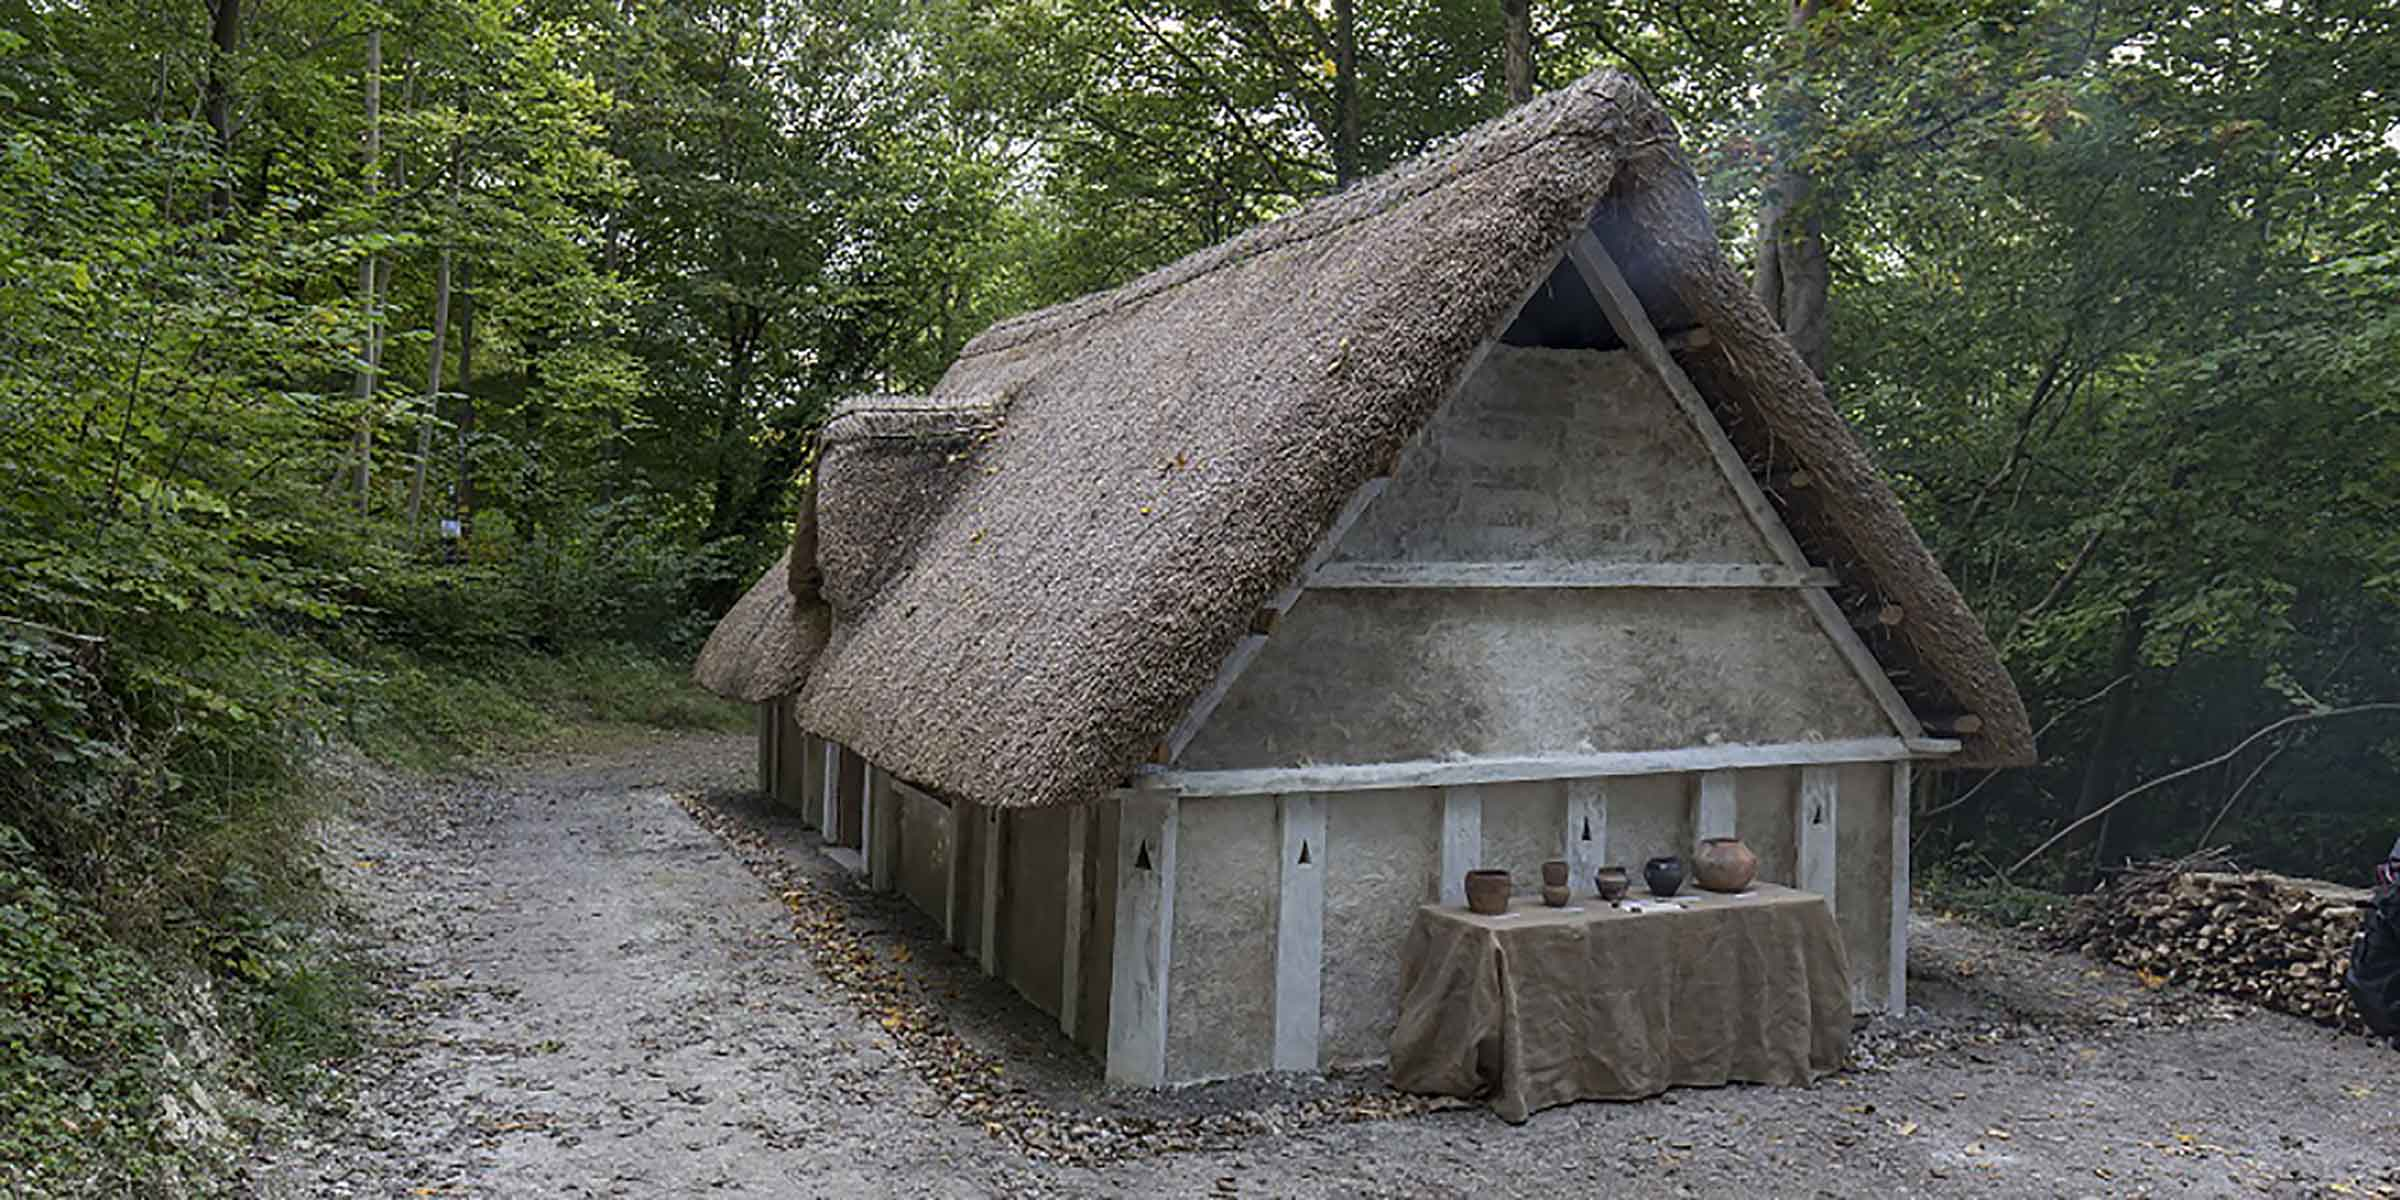 Anglo-Saxon hall house at Weald & Downland Living Museum